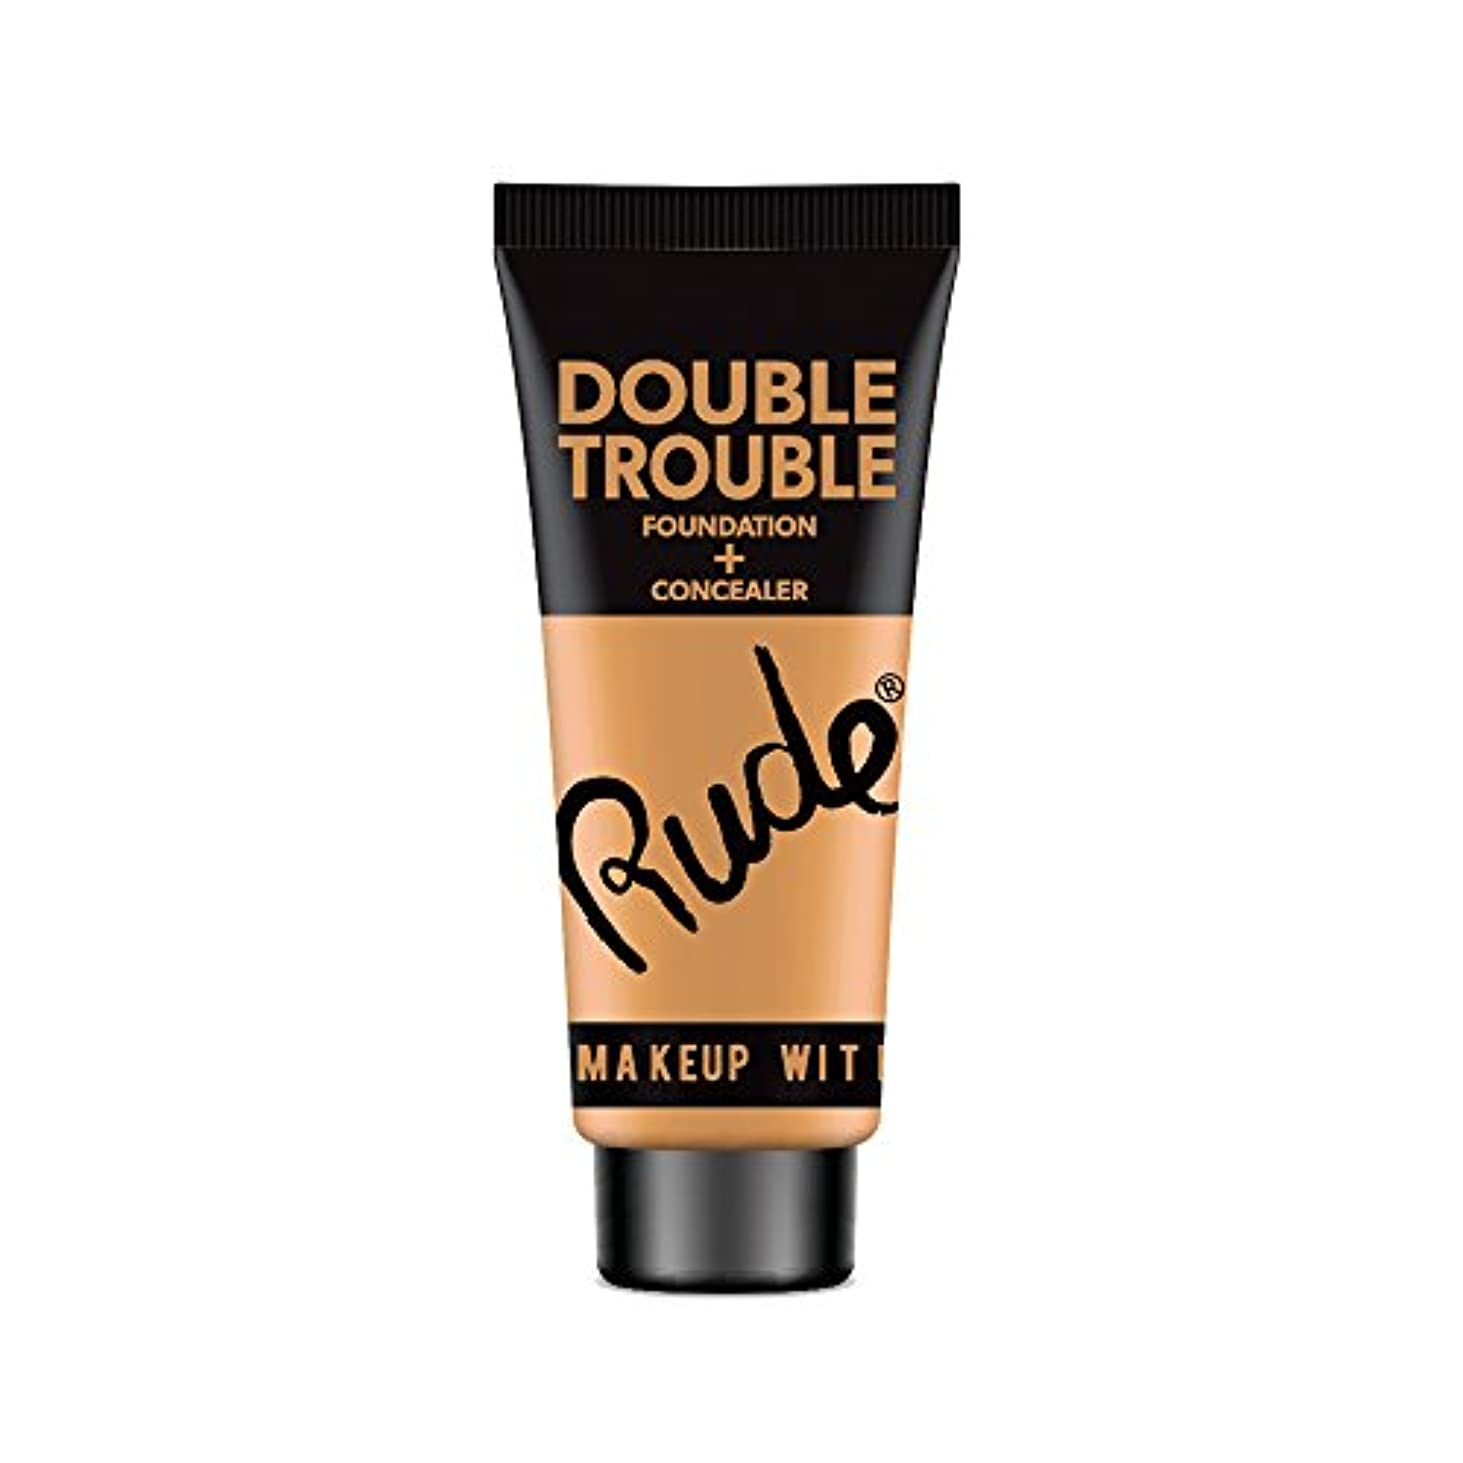 収穫シンポジウム狂人(3 Pack) RUDE Double Trouble Foundation + Concealer - Warm Natural (並行輸入品)